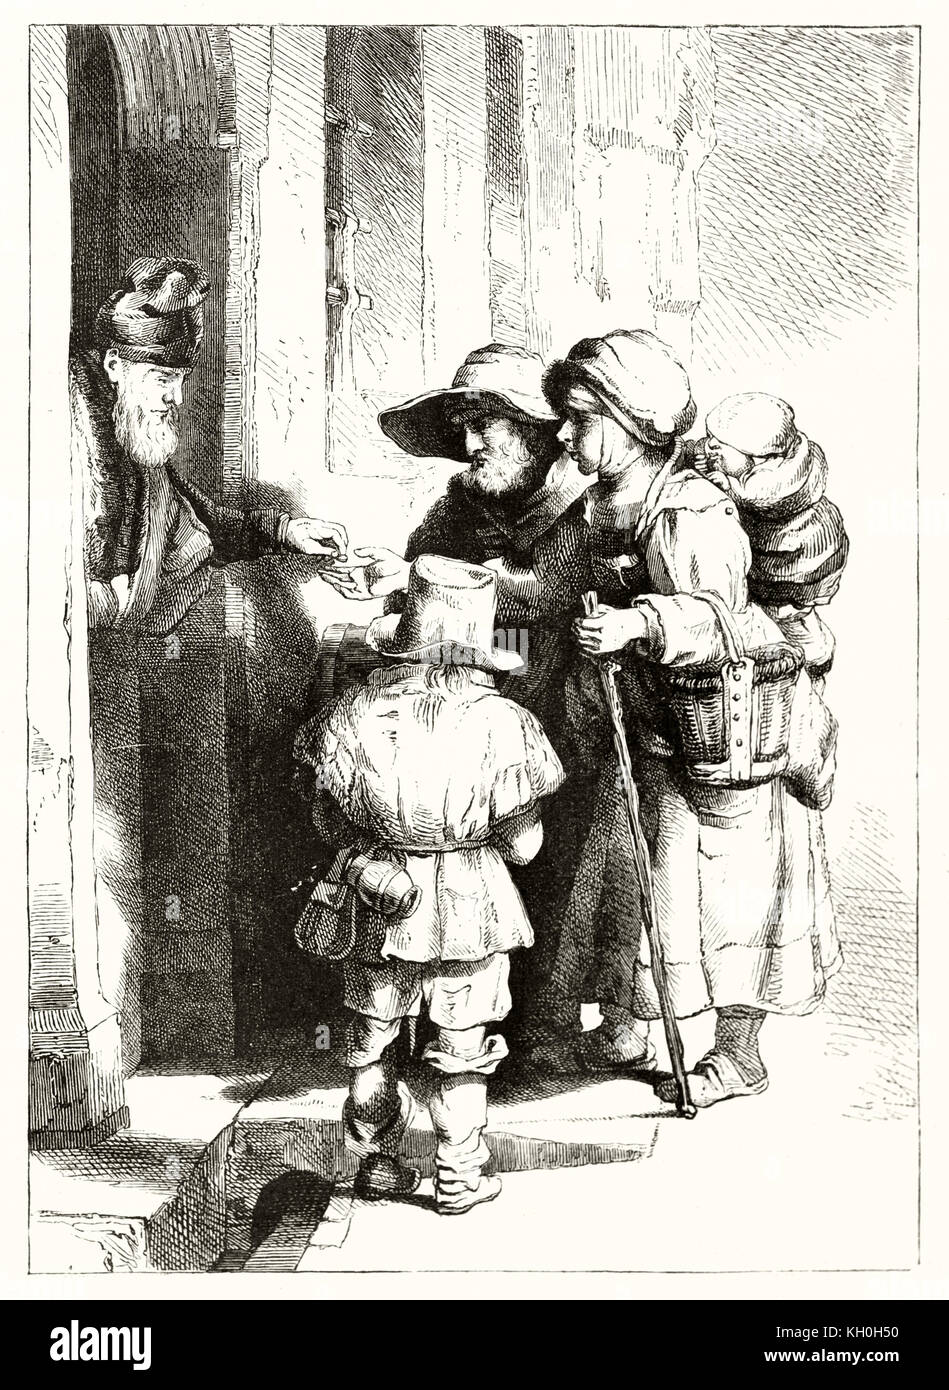 Old reproduction of Rembrandt's engraving depicting a man almsgiving. Publ. on Magasin Pittoresque, Paris, 1847 Stock Photo